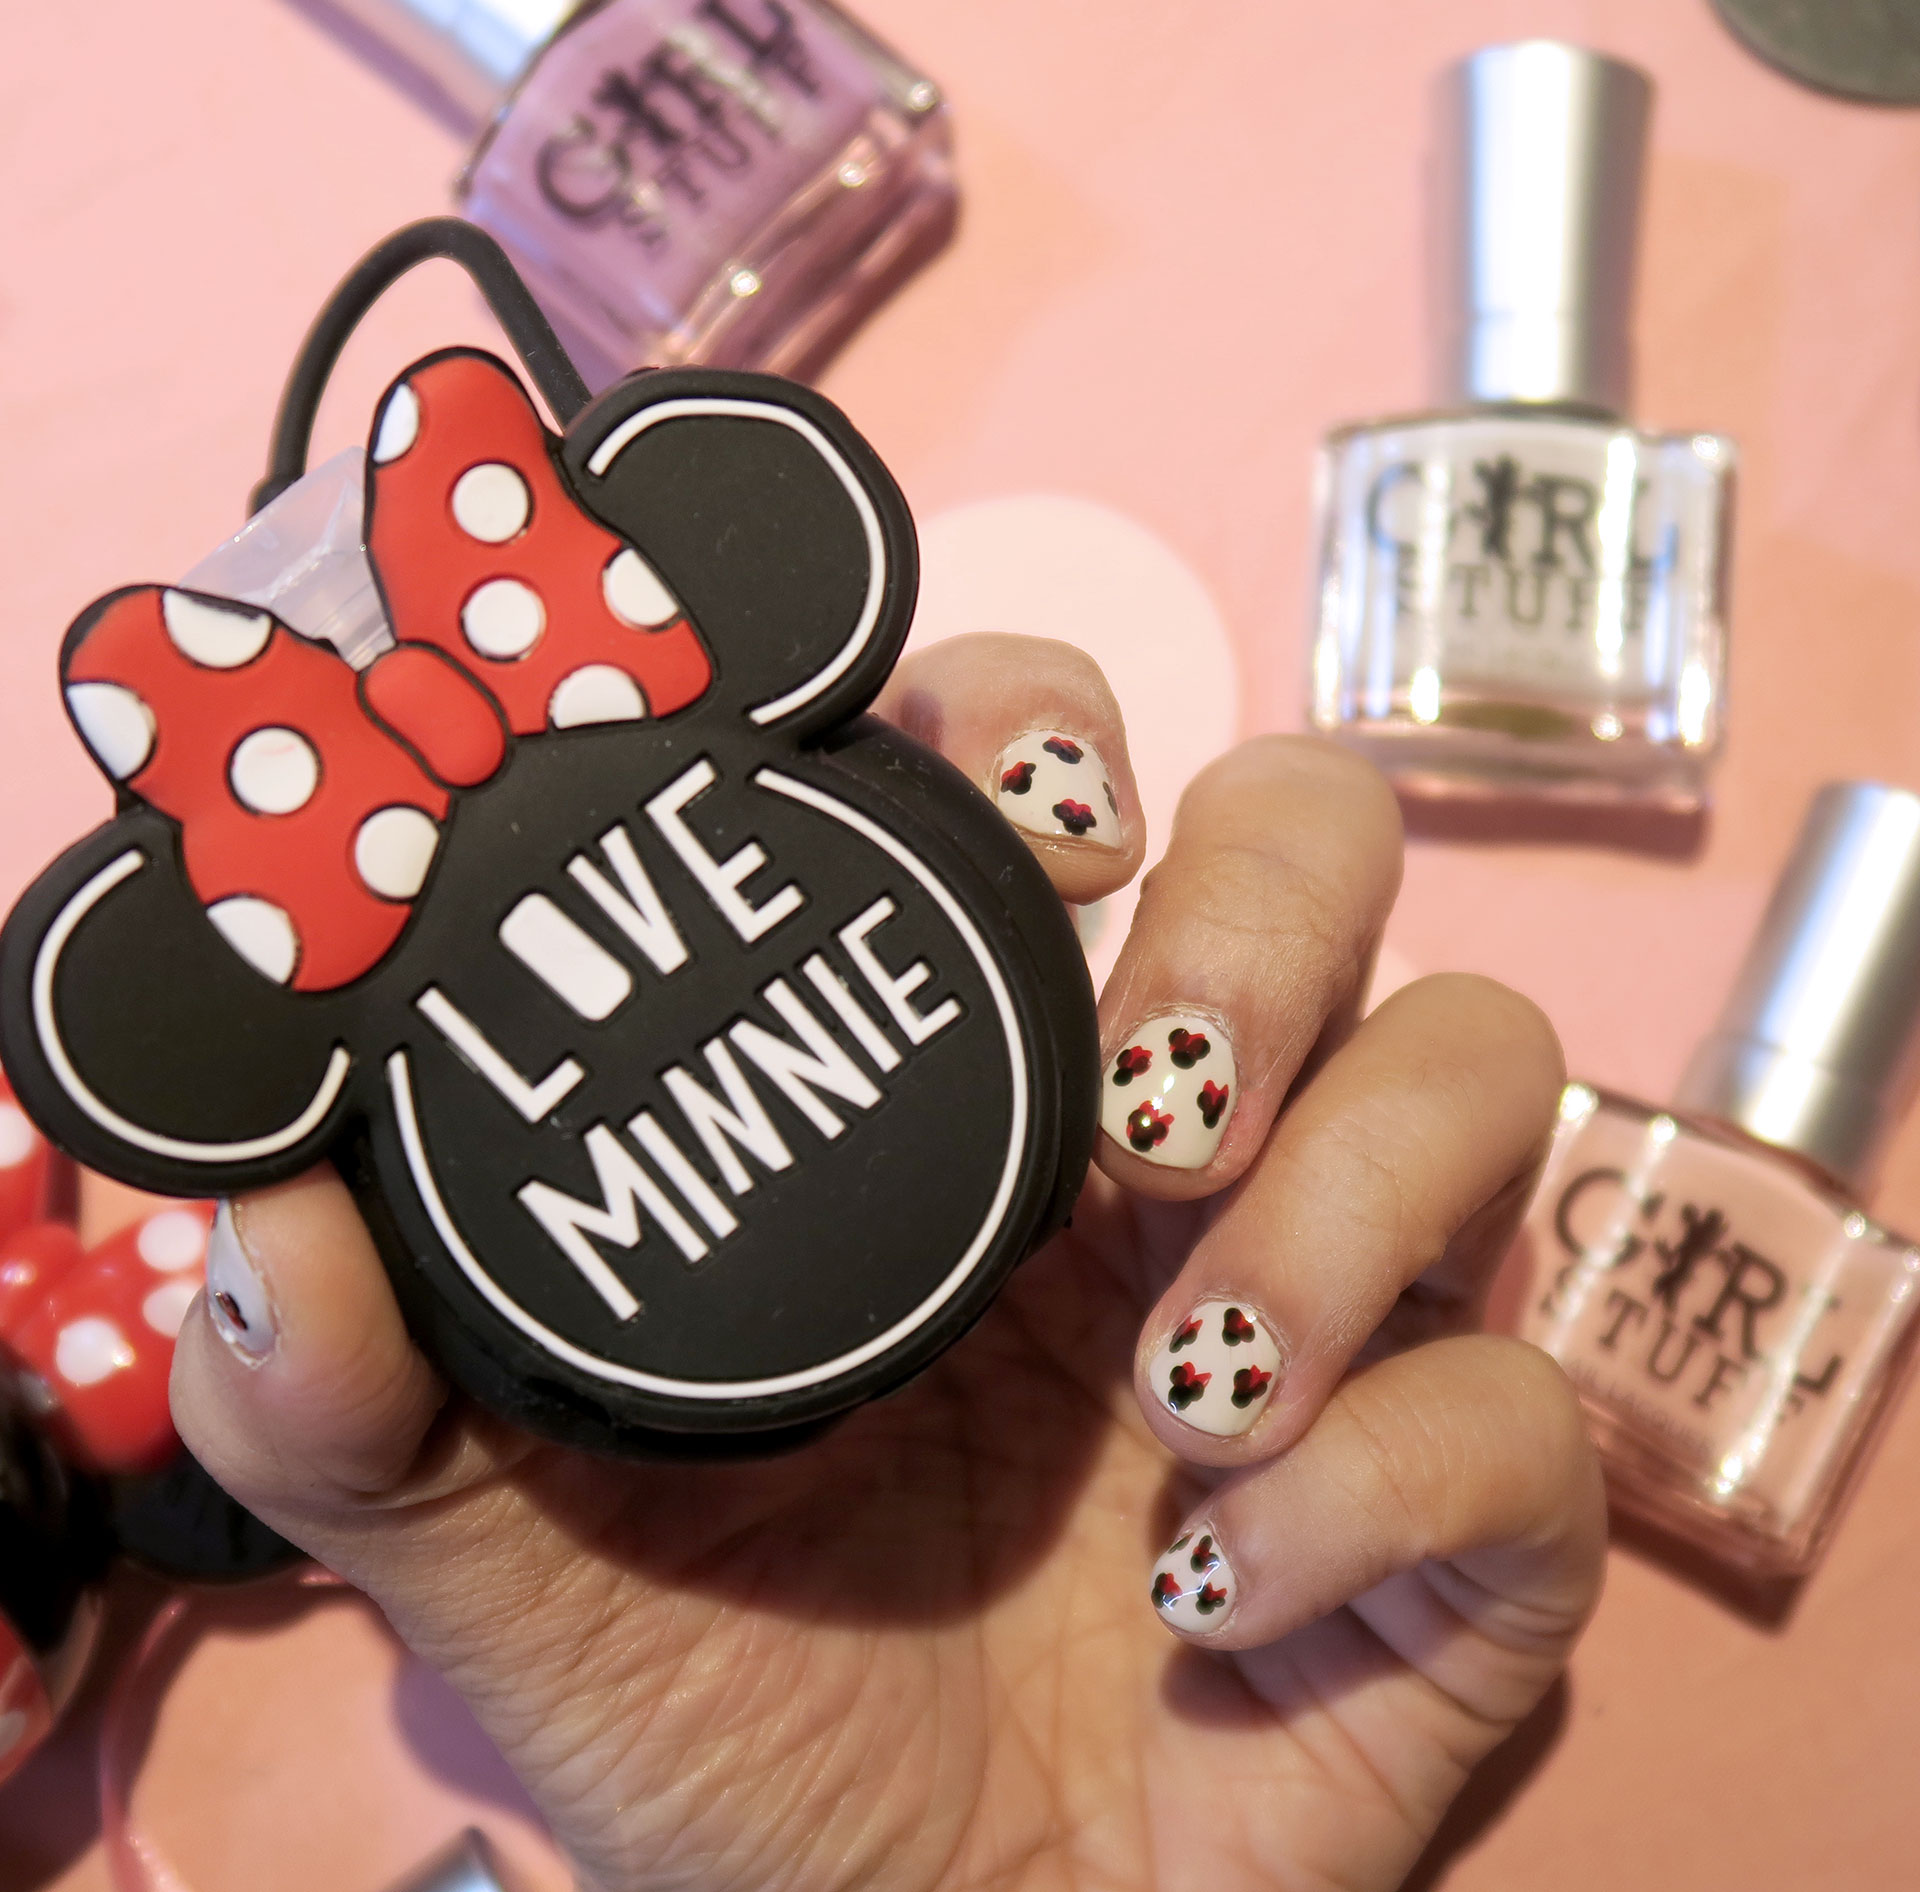 15 Girlstuff Minnie Mouse Nail Lacquers Collection Review Swatches Photos - Gen-zel She Sings Beauty